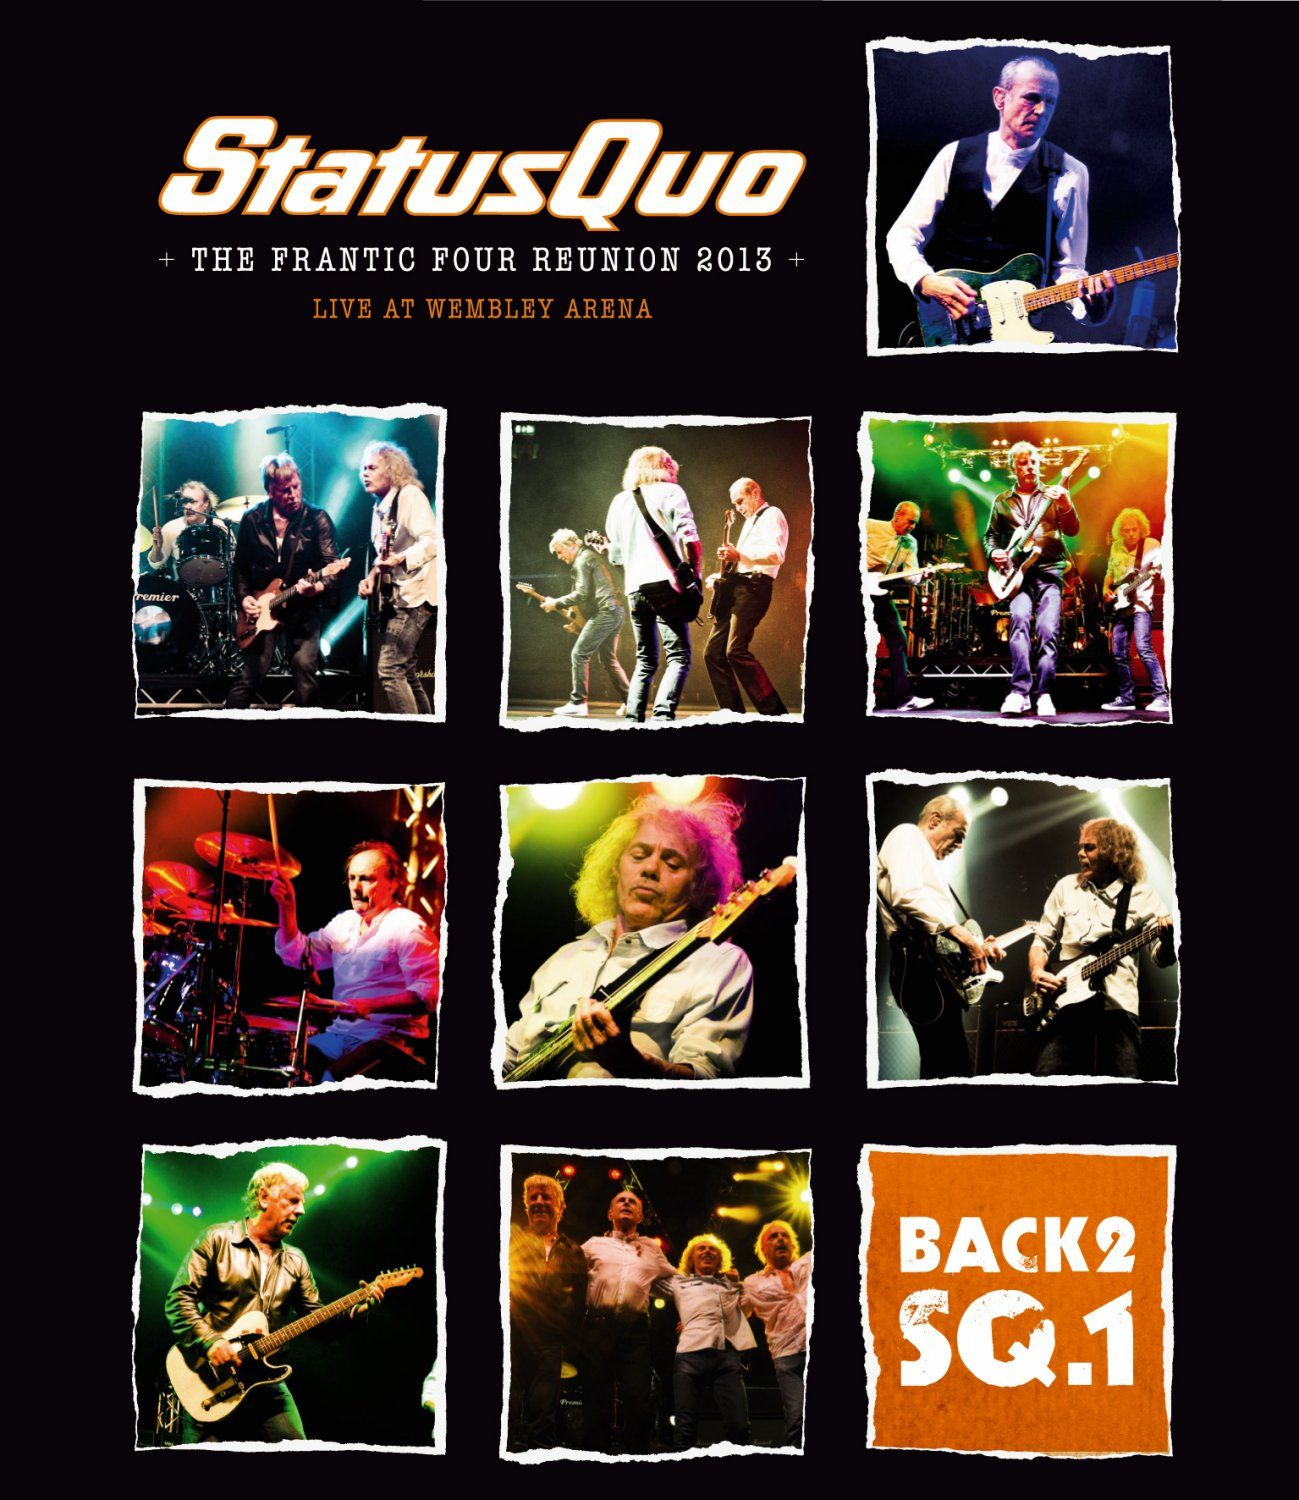 Status Quo: Back2SQ.1 - The Frantic Four Reunion 2013 Live at Wembley Arena